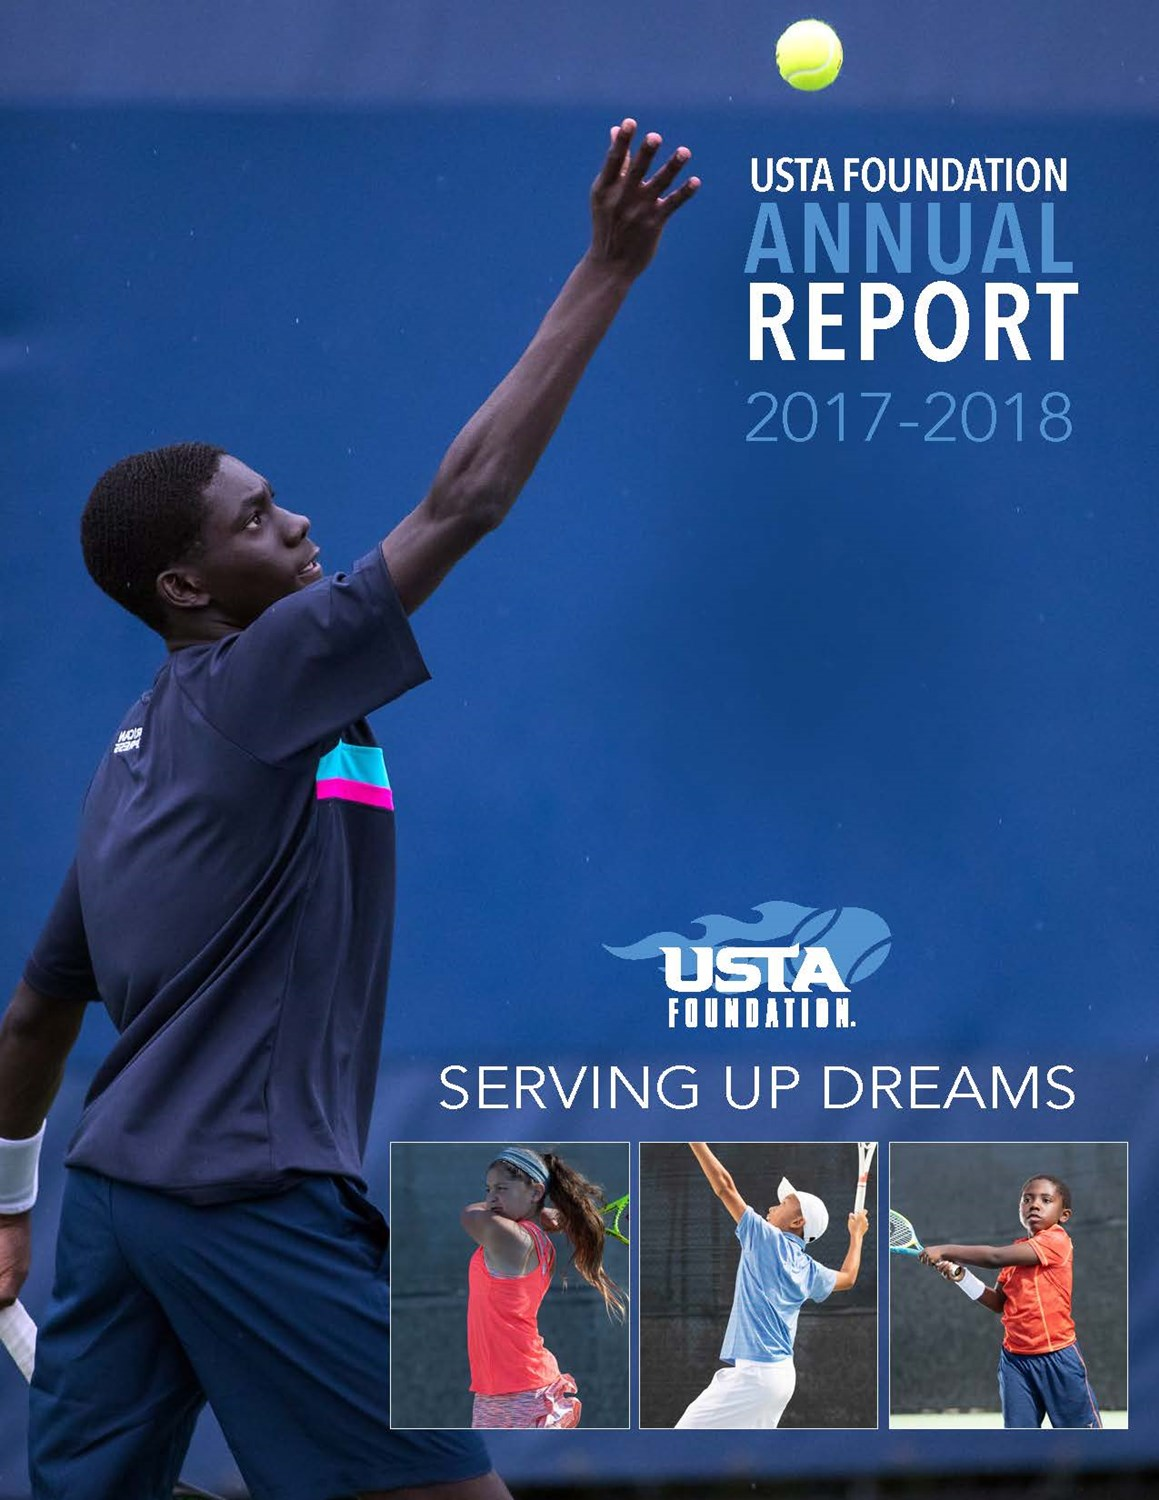 usta_foundation_2017-2018_annual_report_final1_1